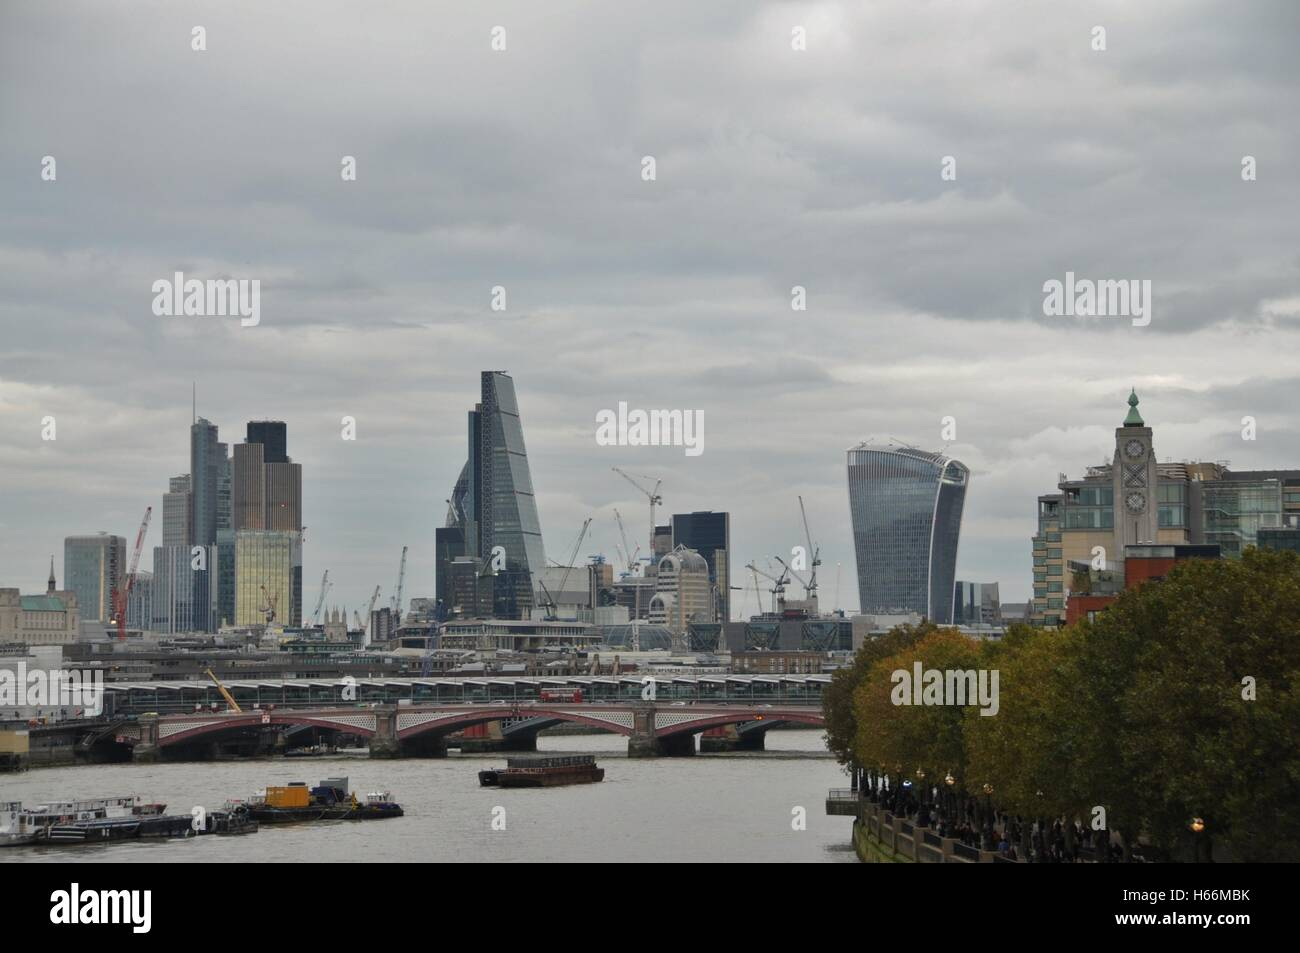 London's river Thames and the City. - Stock Image